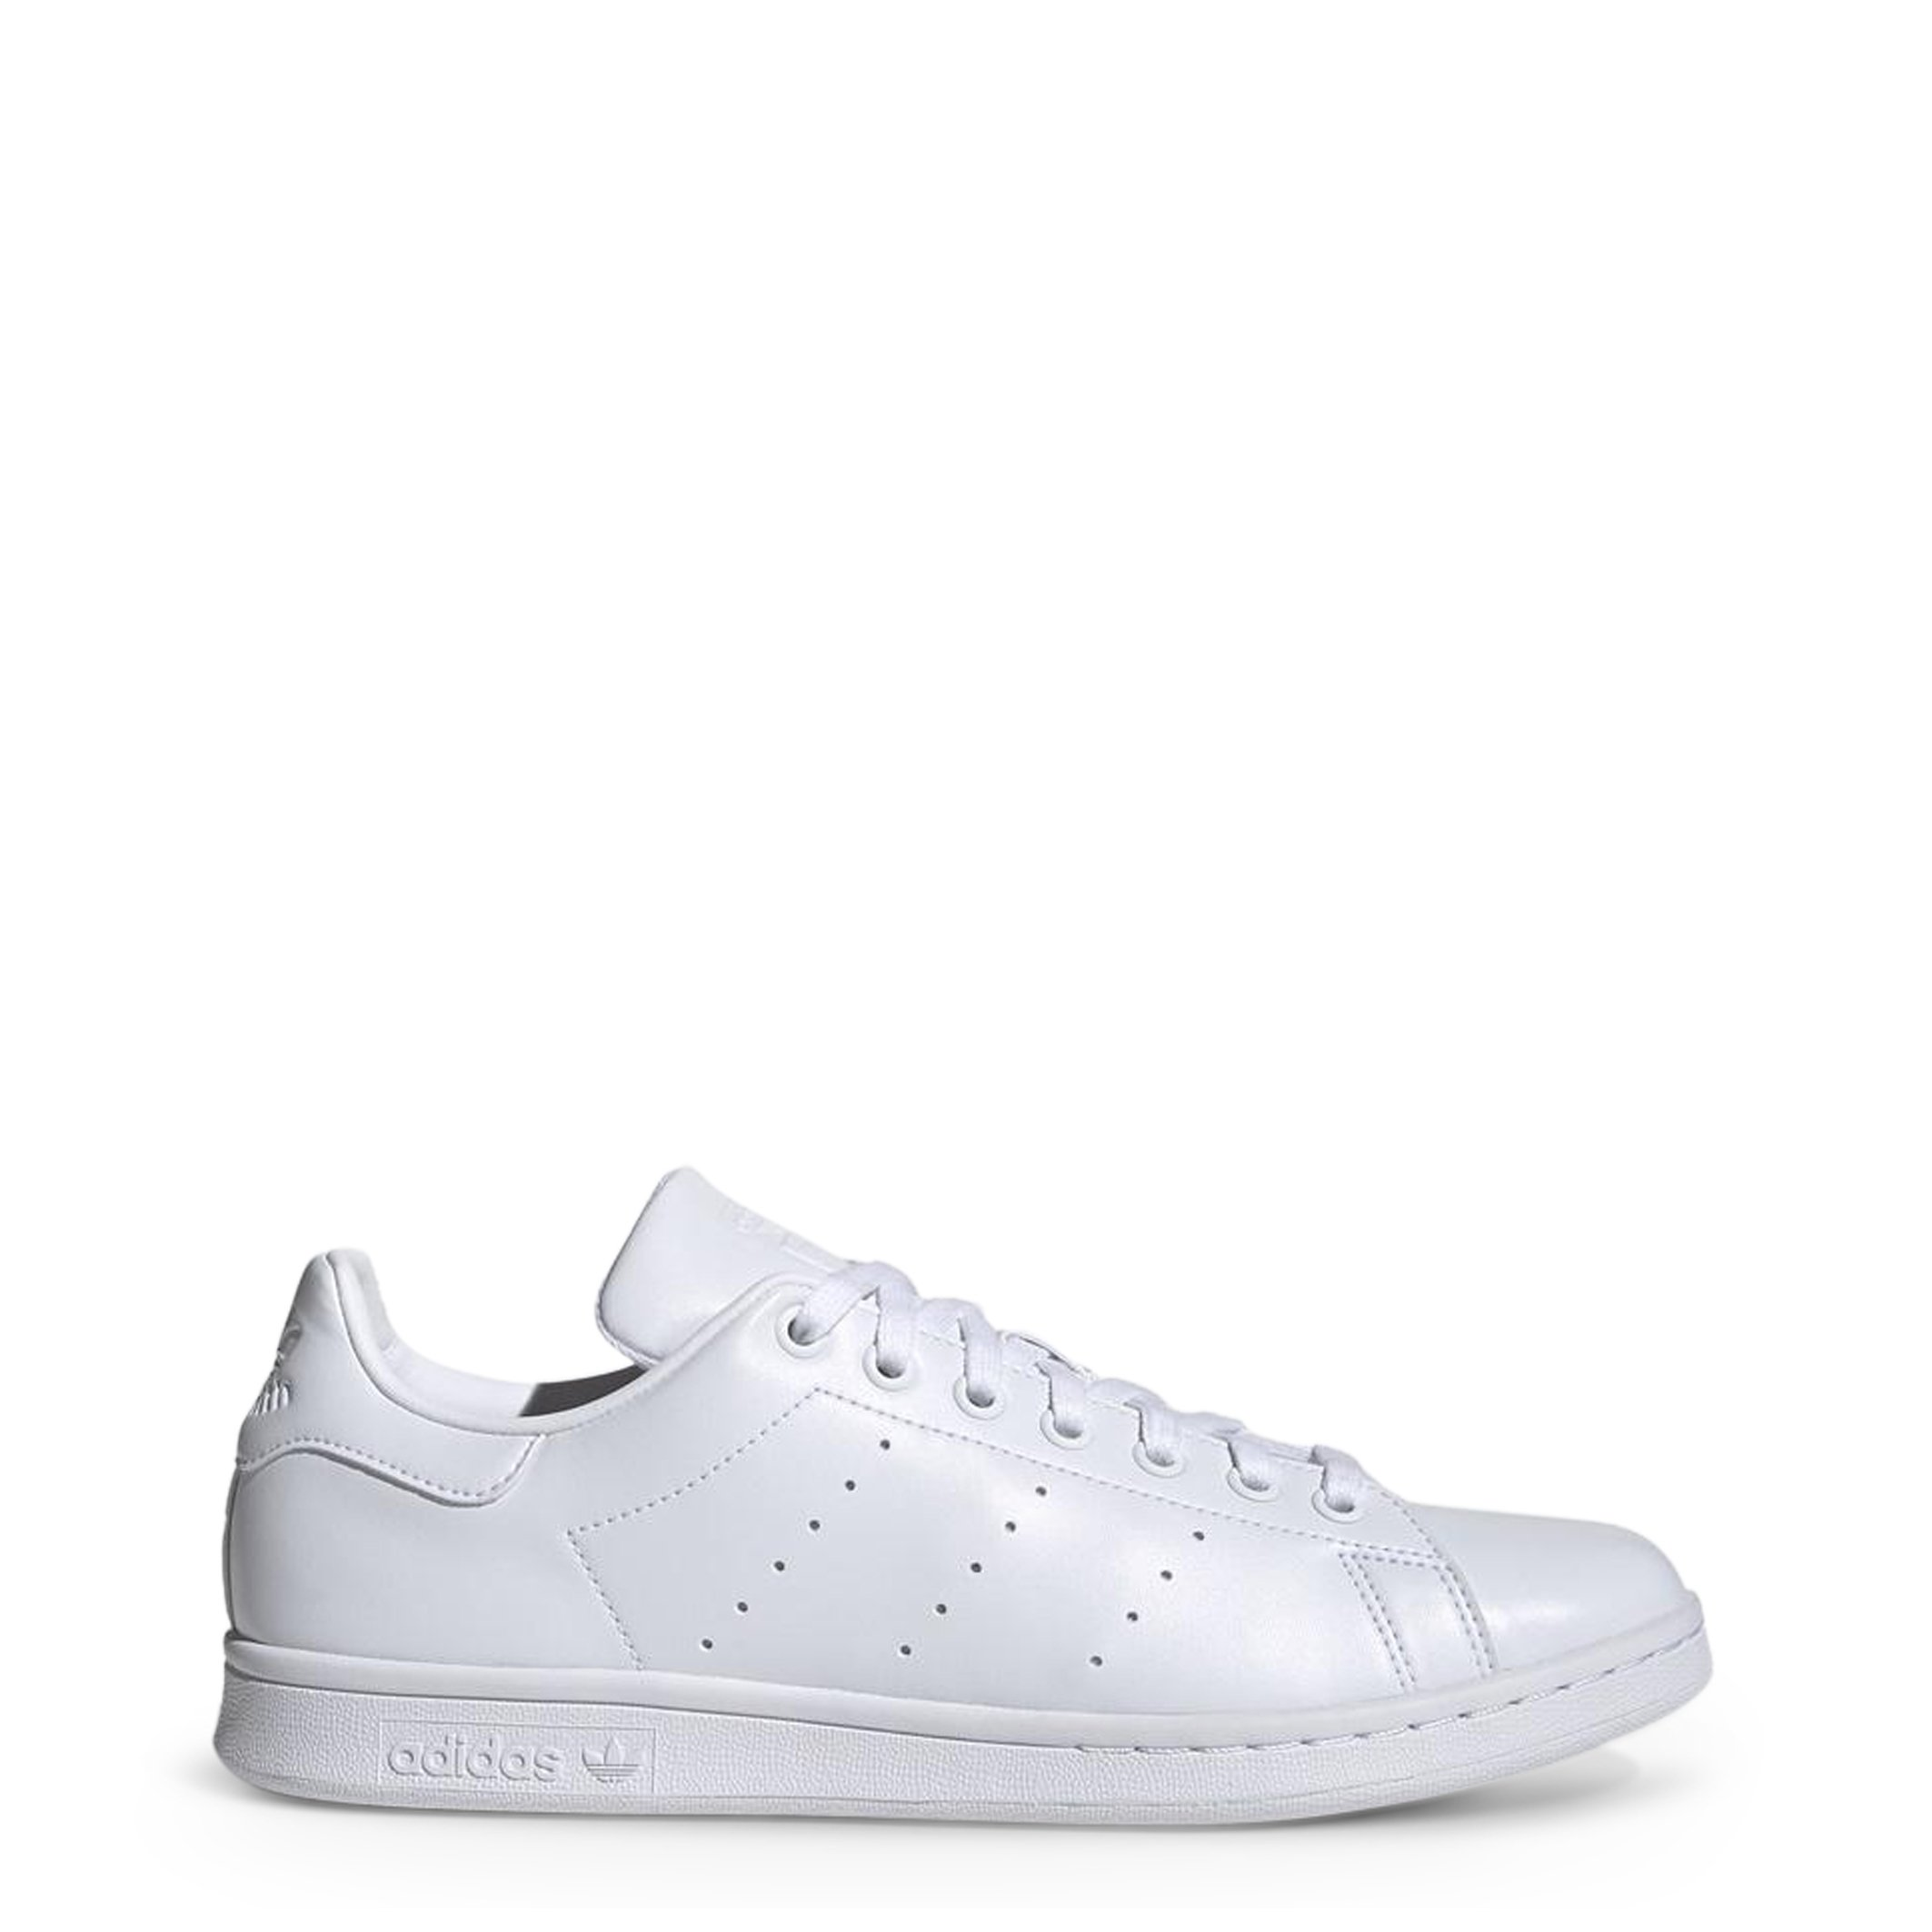 Adidas Unisex Stan Smith Trainers Various Colours - white-7 UK 3.5